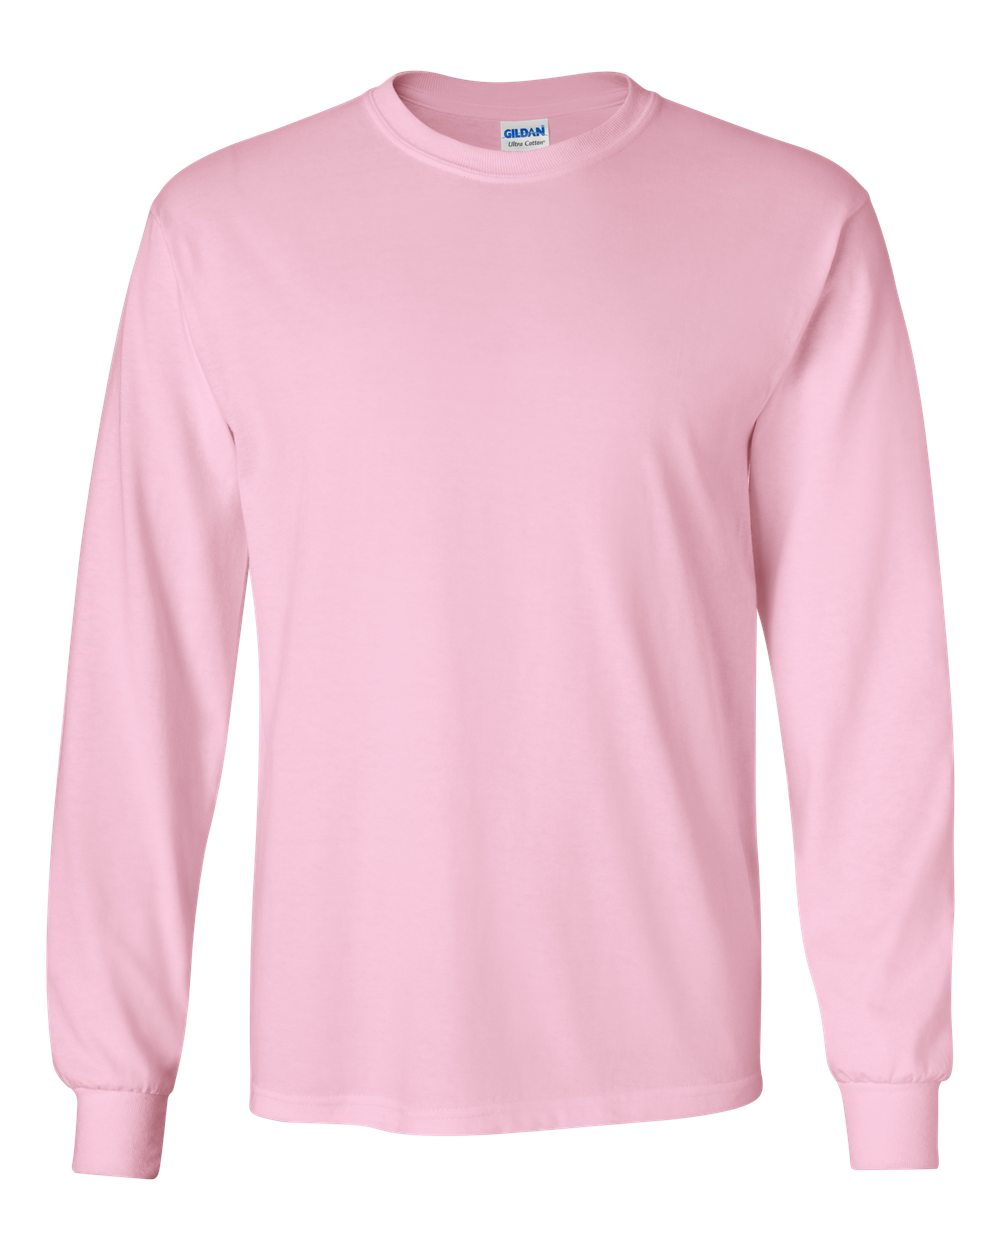 Gildan_2400_Light_Pink_Front_High.jpg